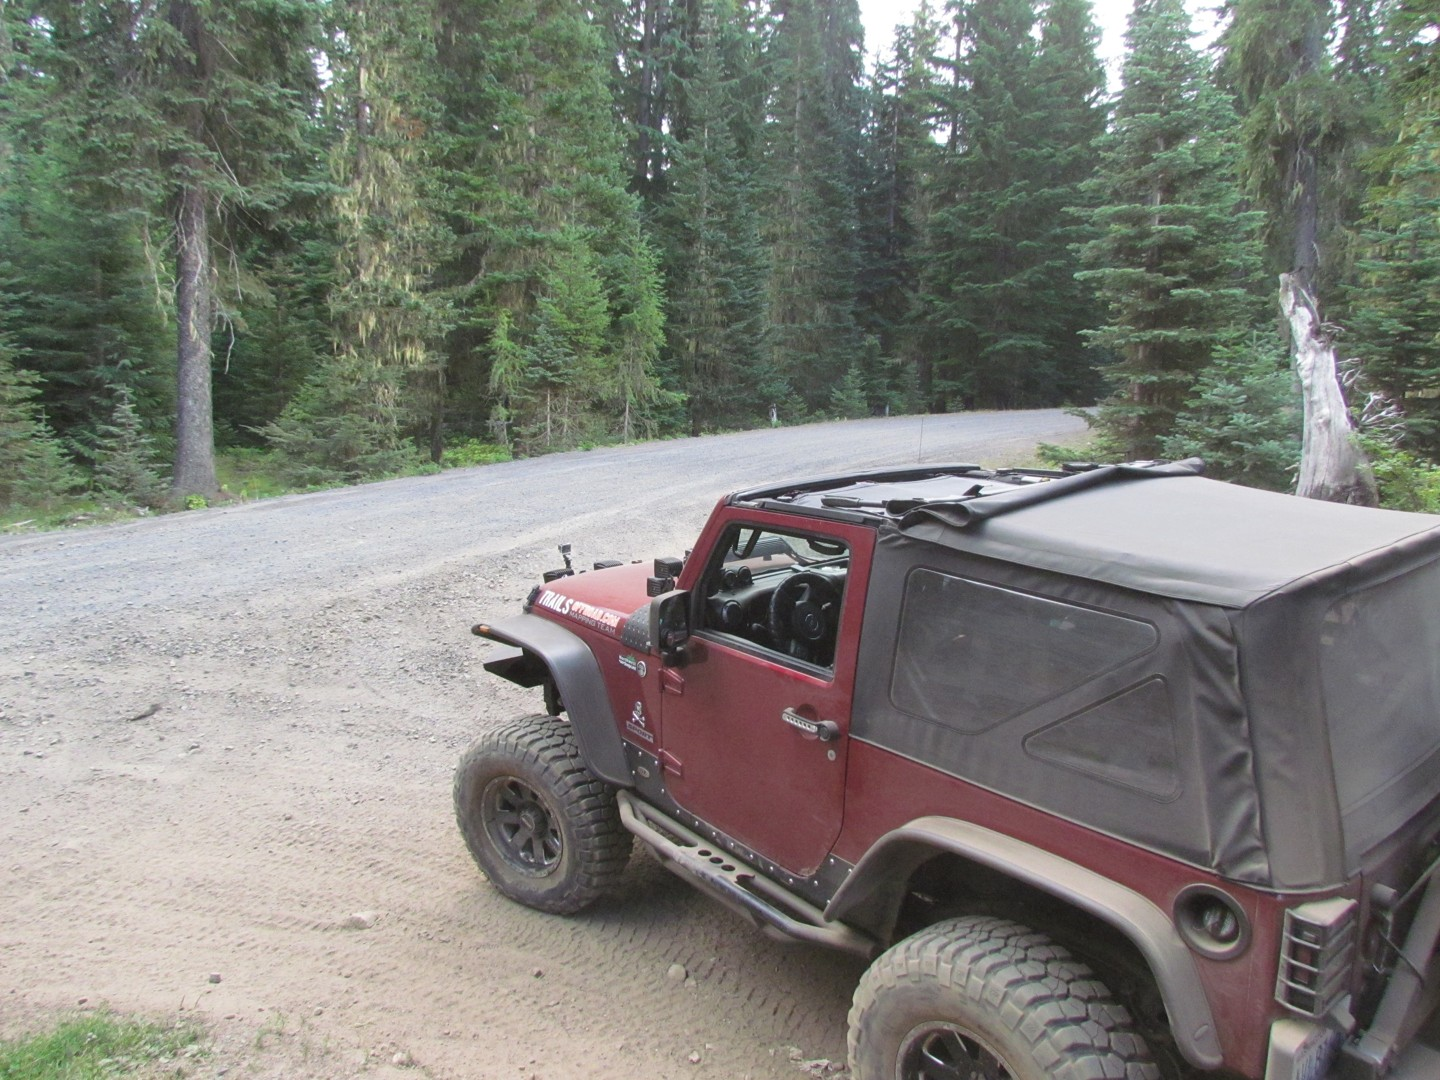 Naches Trail - Waypoint 20: Trail intersection / Turn left